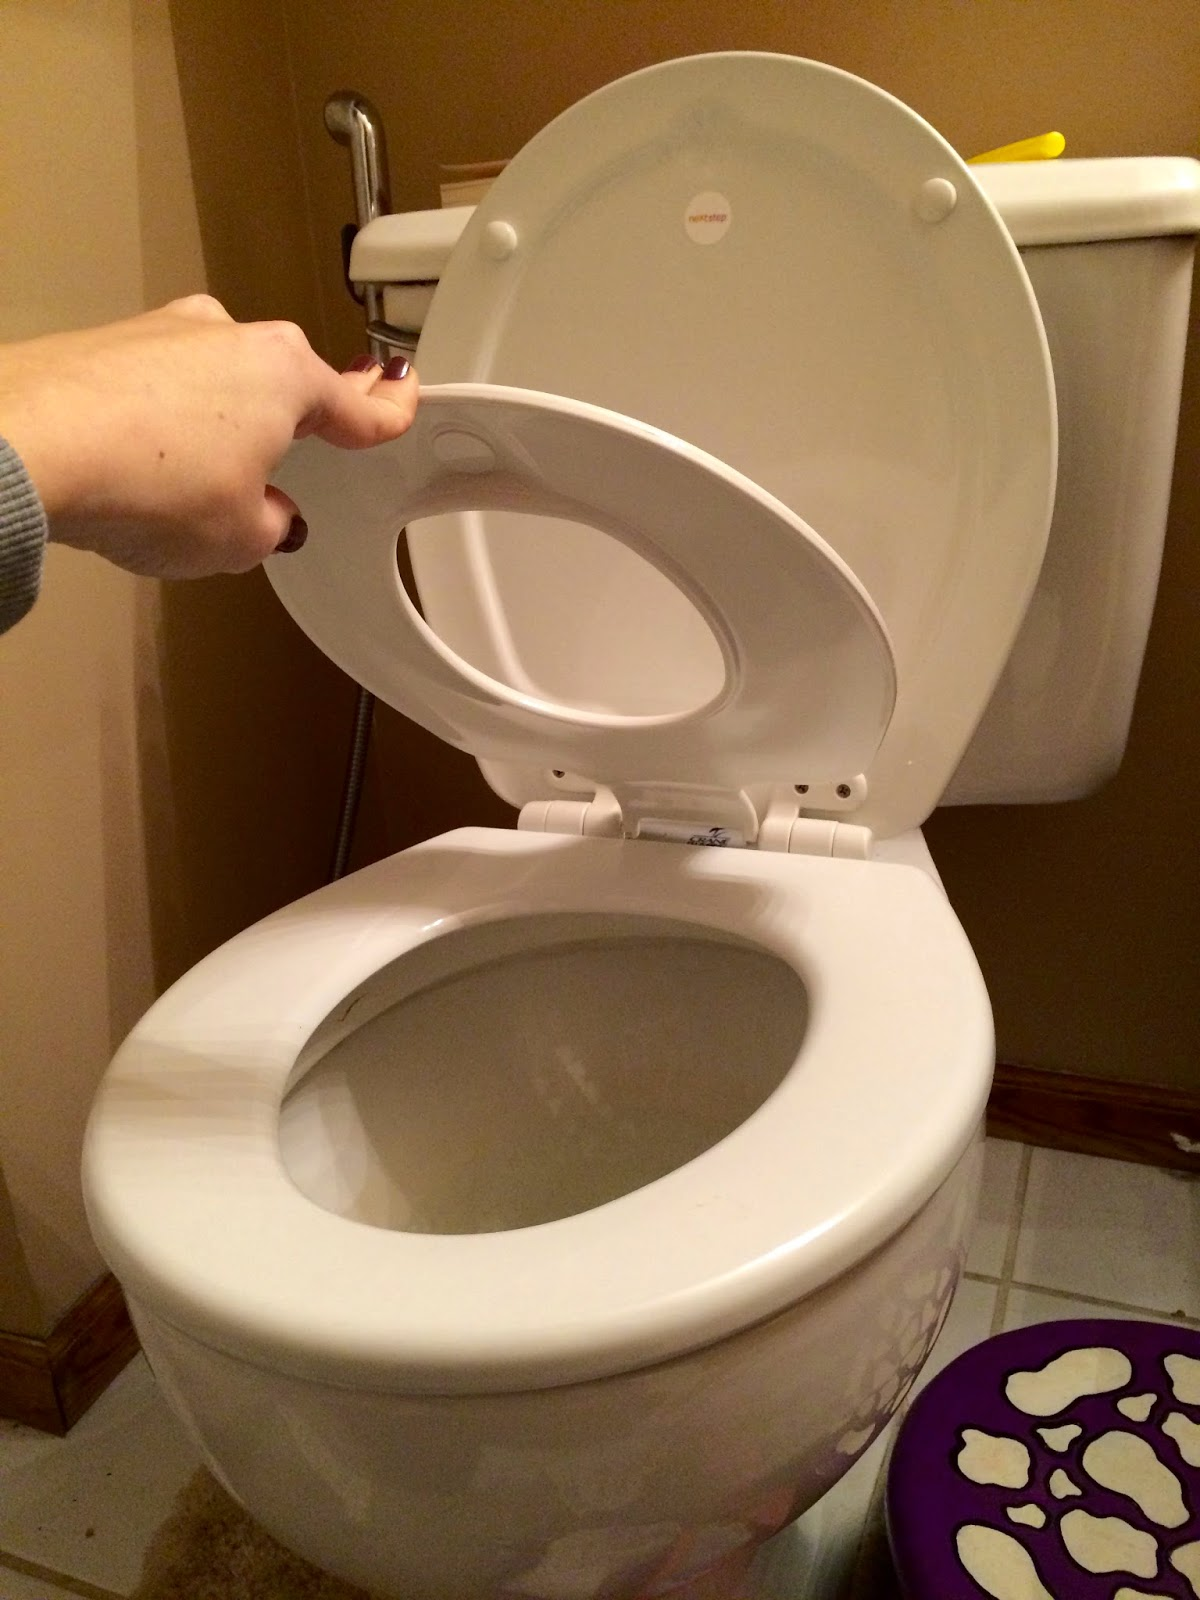 better together.: Potty Training at 20 Months: Week One.